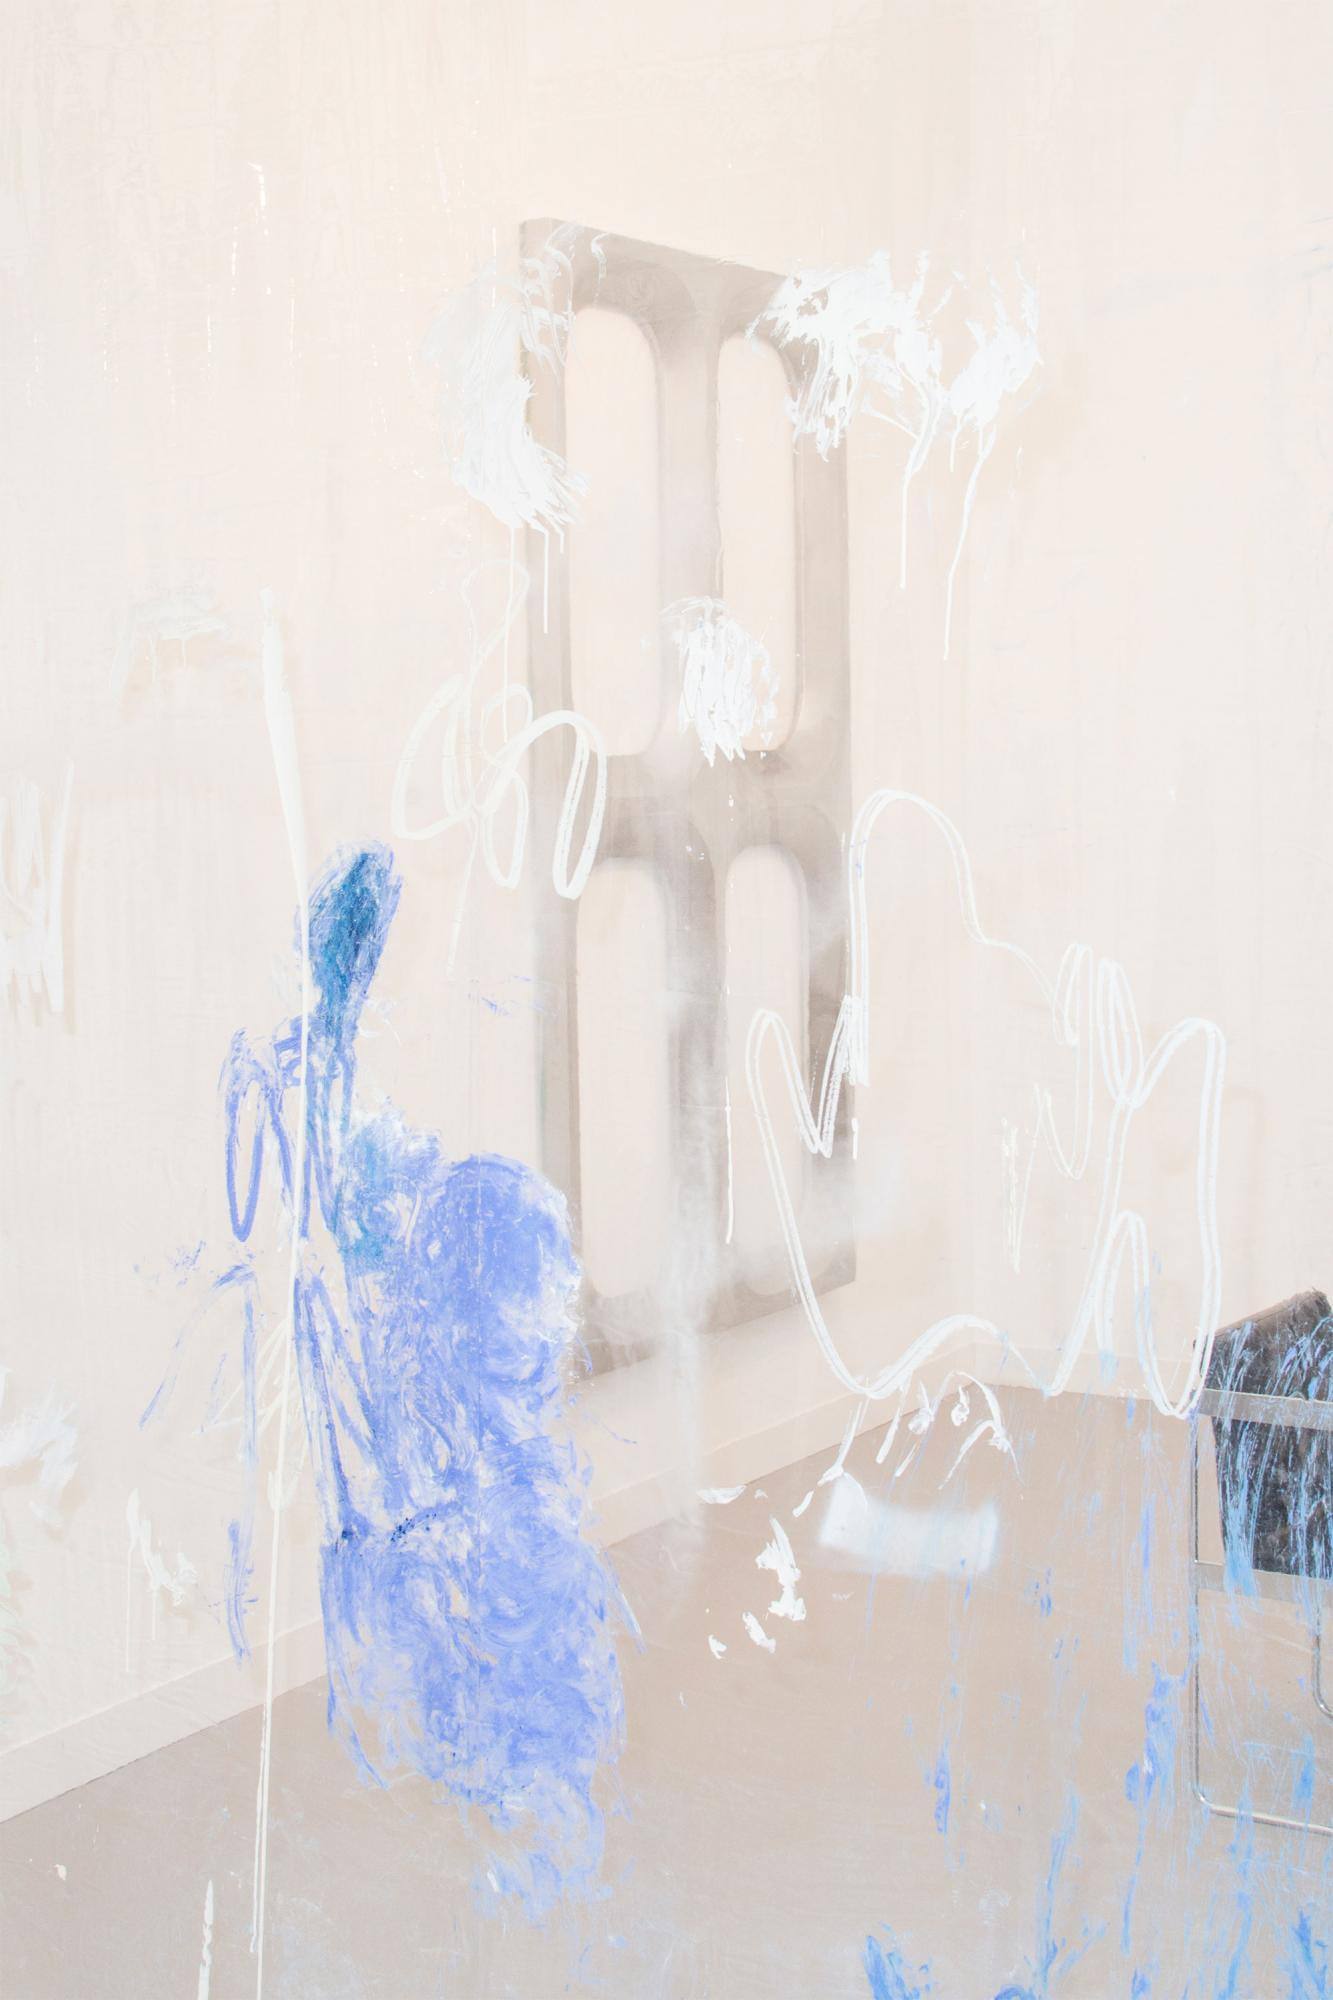 Donna Huanca (front), Blair Thurman (back) at Peres Projects